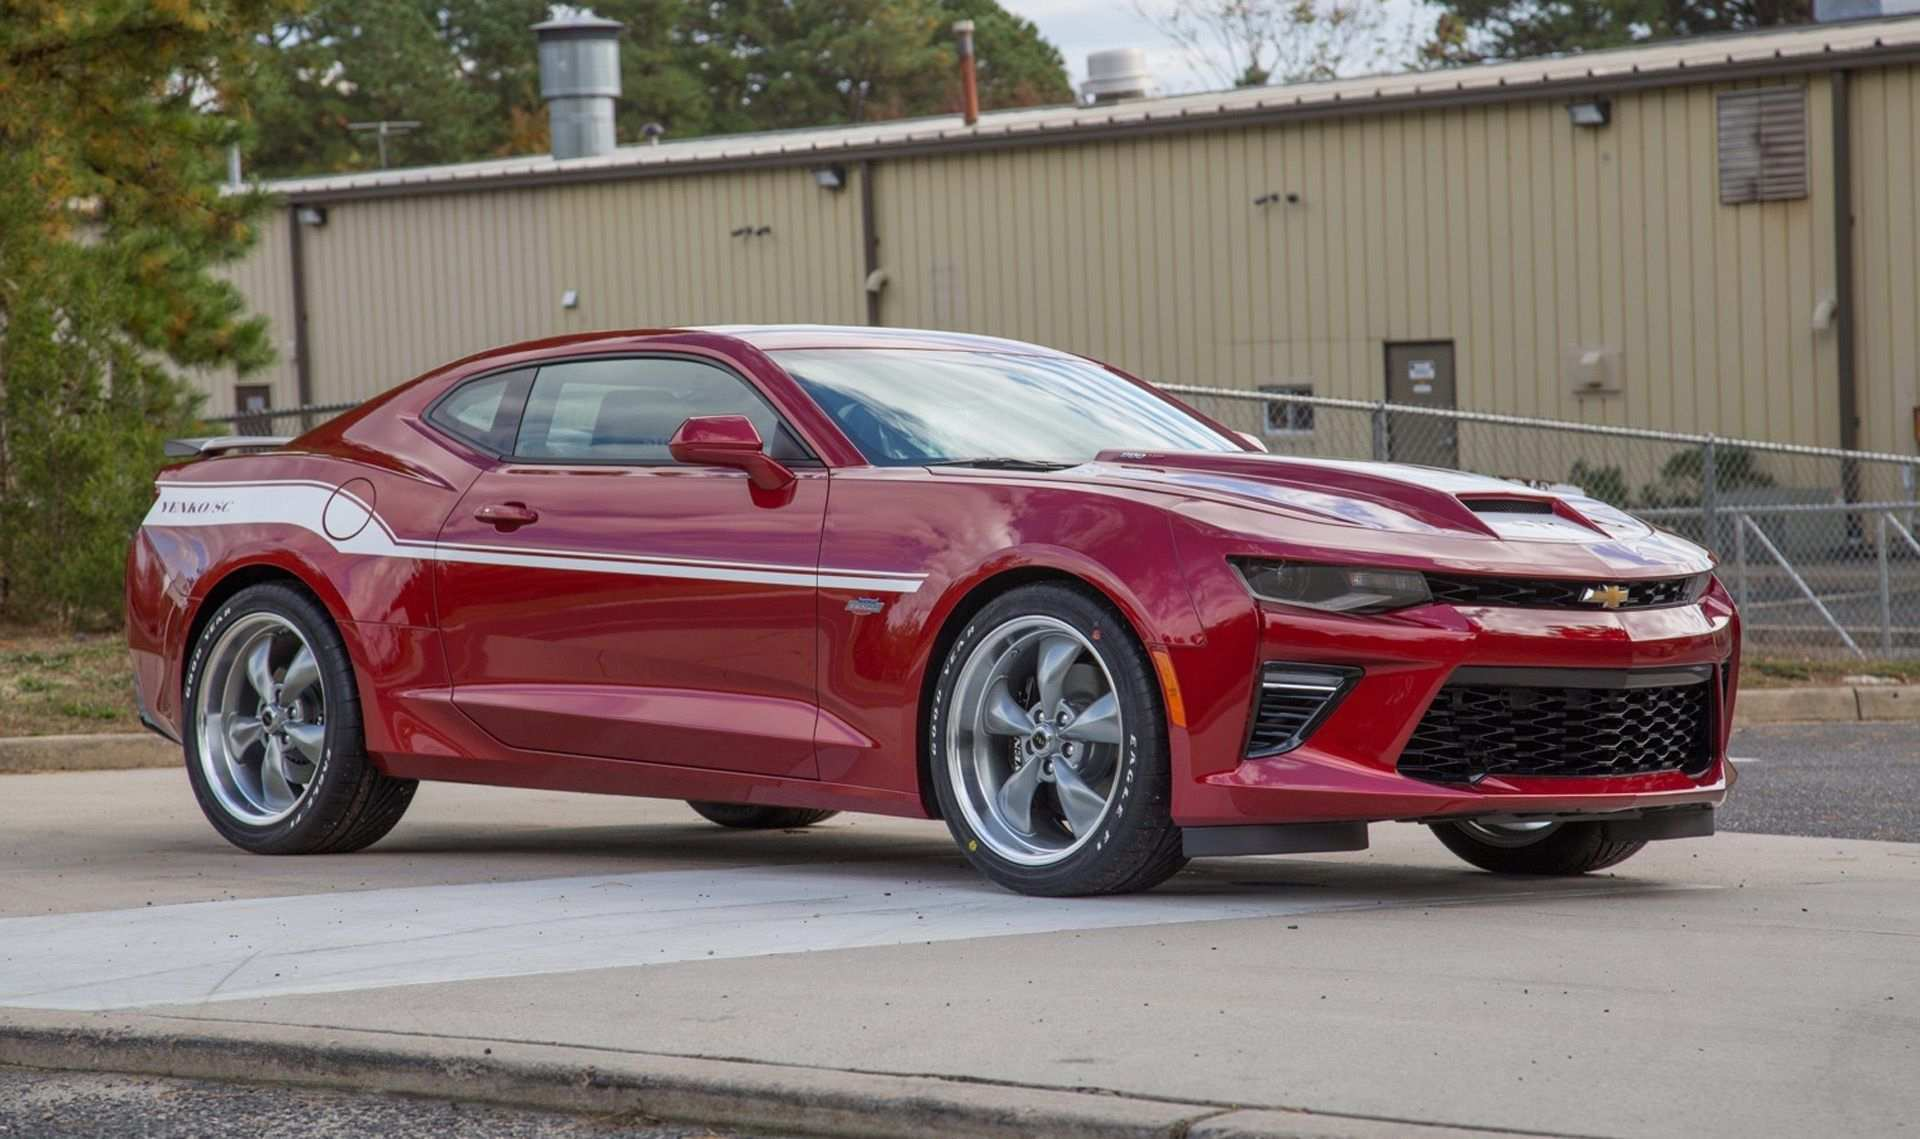 56 A 2020 The All Chevy Camaro Price